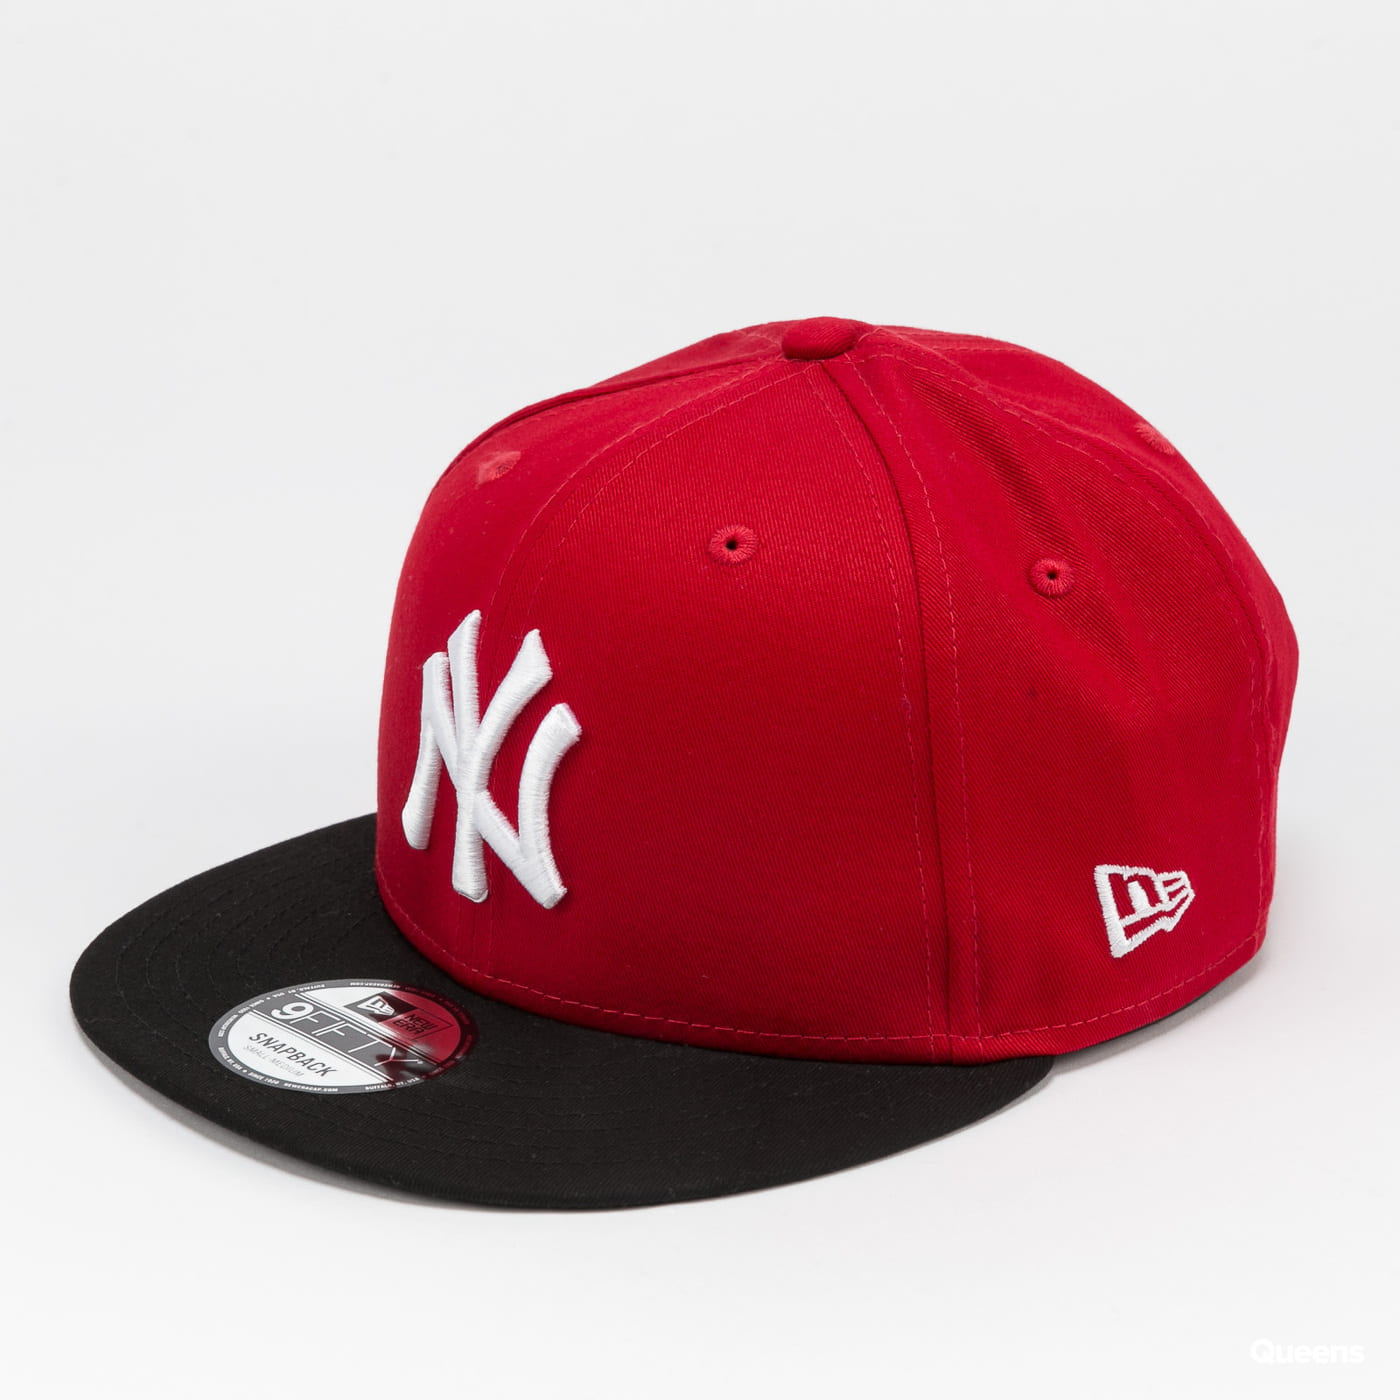 New Era 950 Cotton Block NY C/O rot / schwarz / weiß